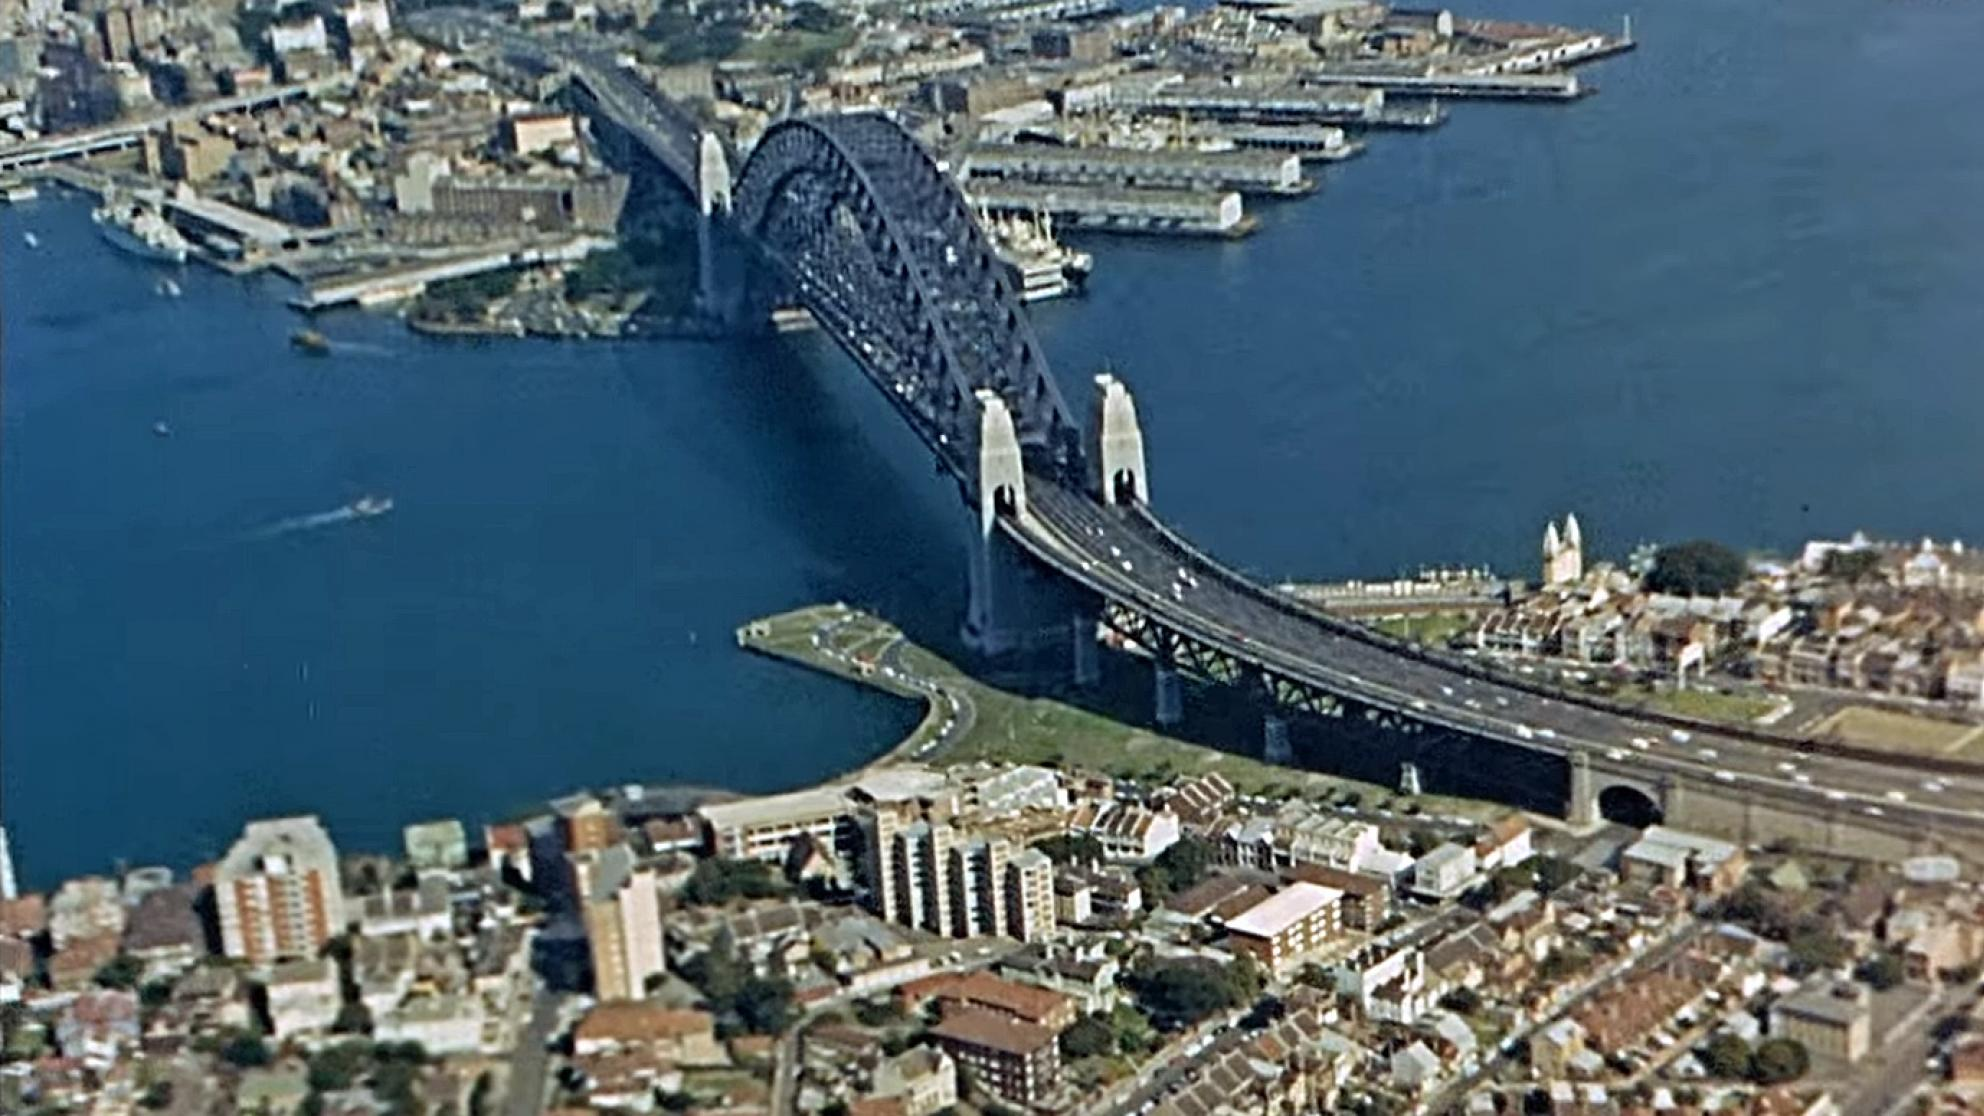 Aerial view of Sydney Harbour Bridge with Kirribilli and Milsons Point in the foreground and the Walsh Bay and Rocks area at the top of the image